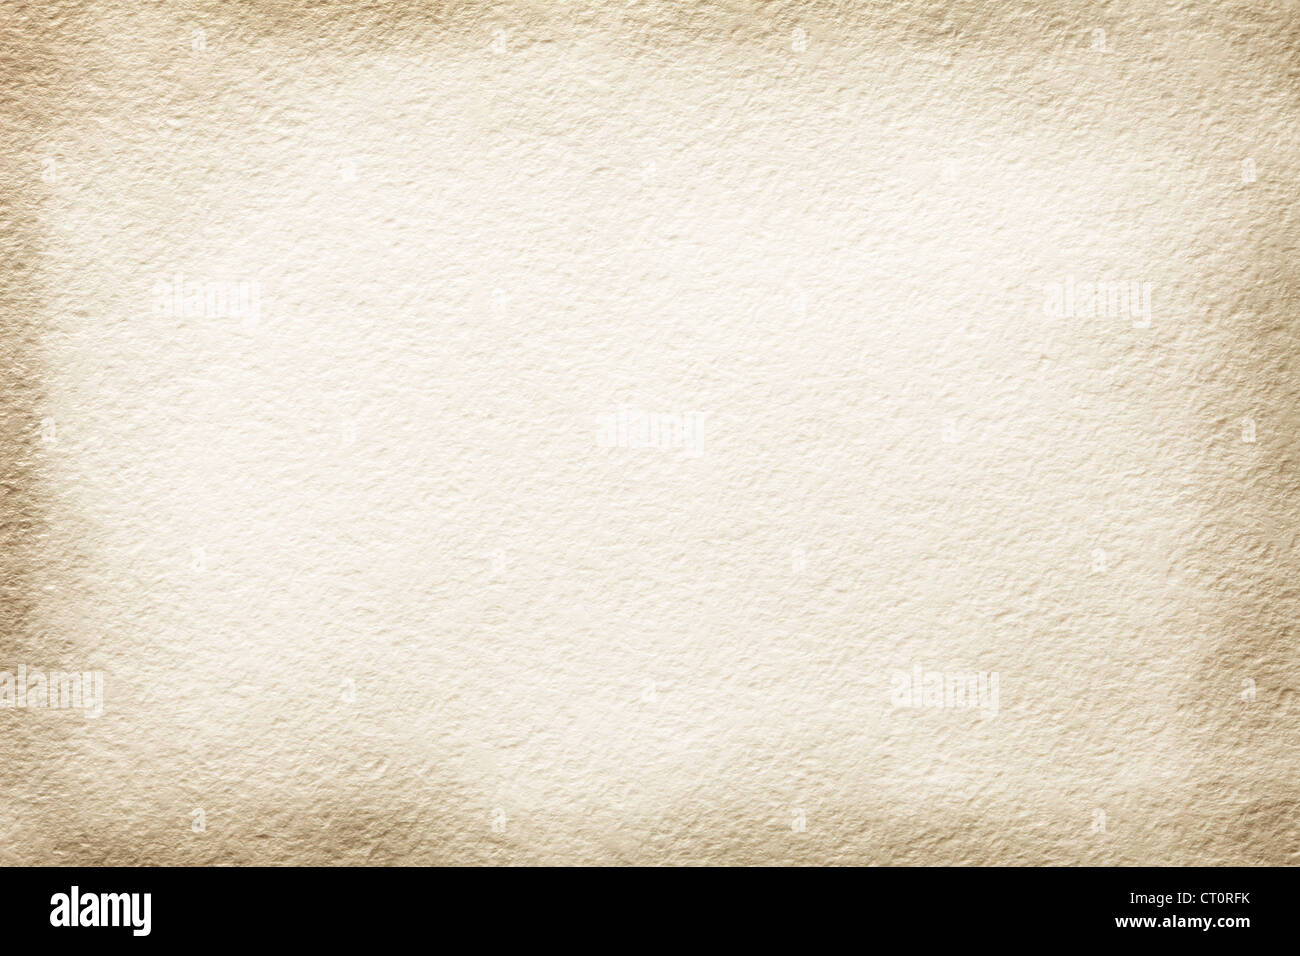 Texture old paper with tinted edges - Stock Image